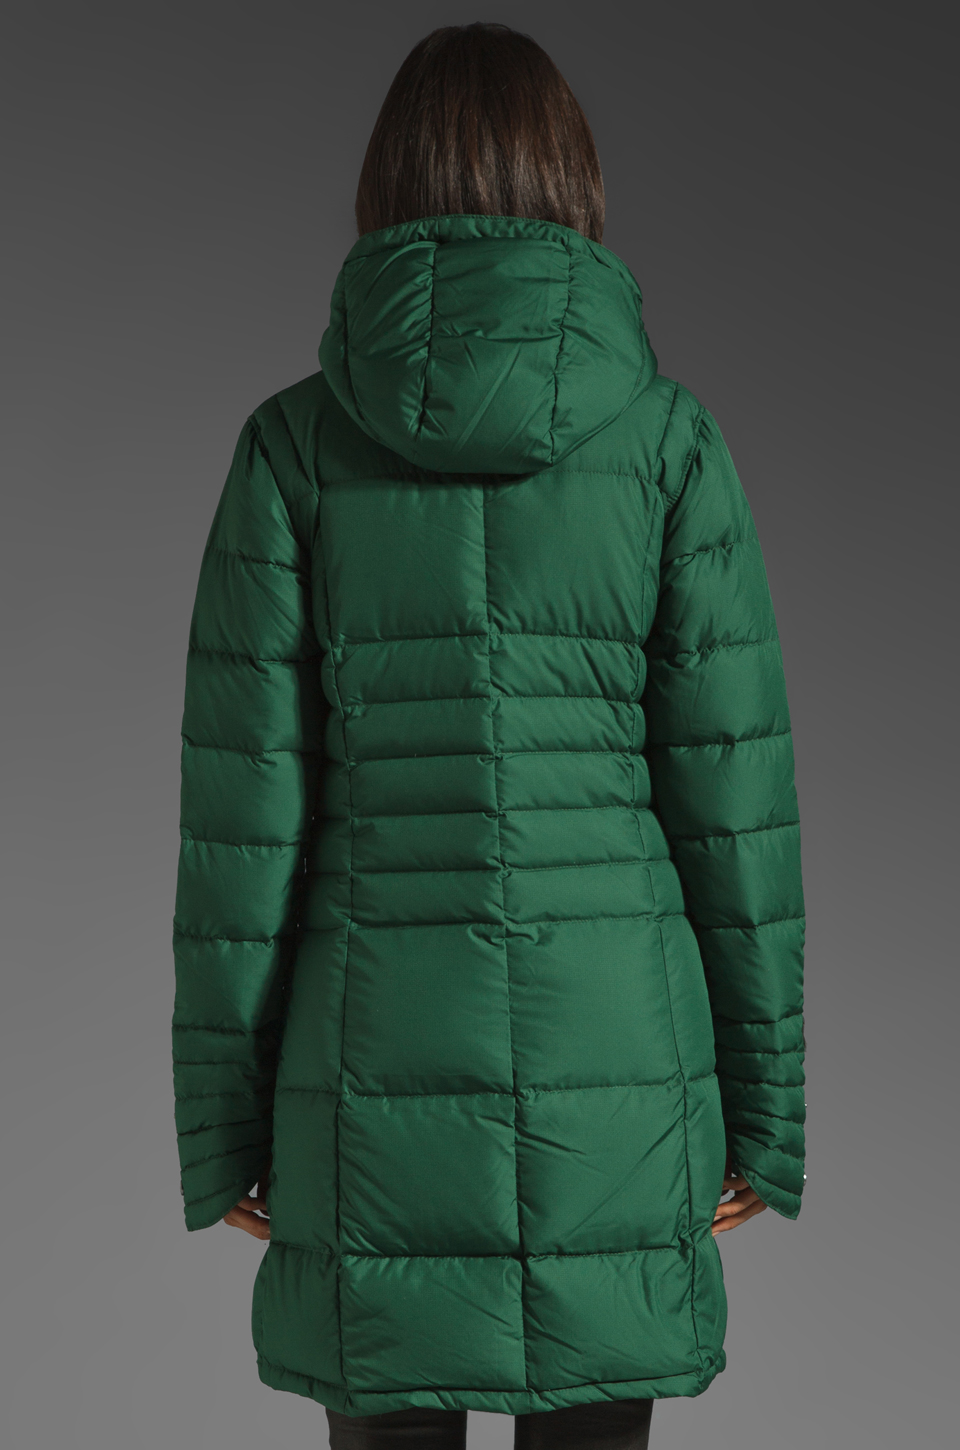 Spiewak Warren Jacket in Evergreen